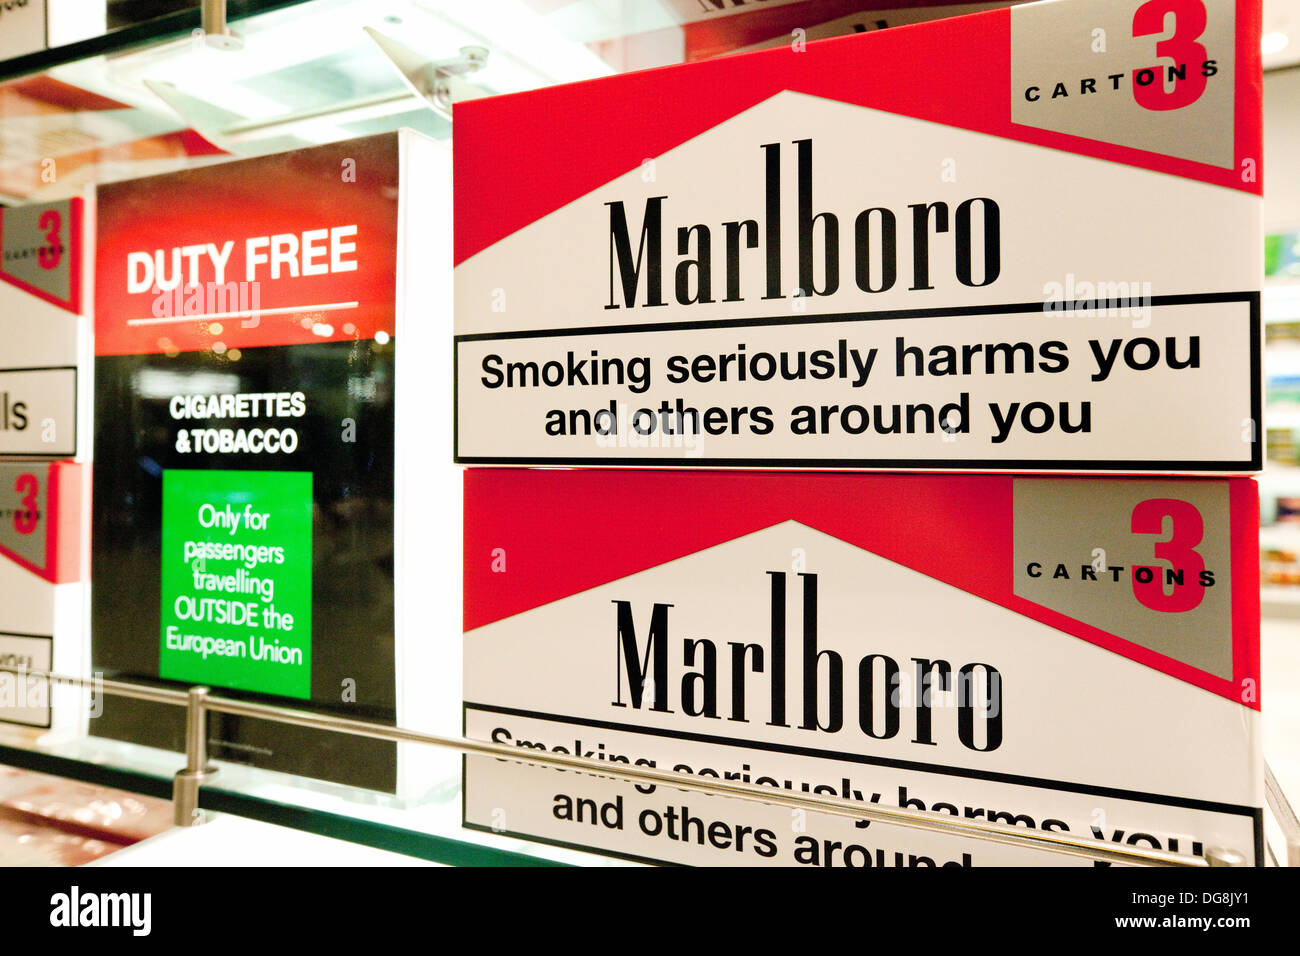 How much is a pack of cigarettes in Wyoming Tennessee